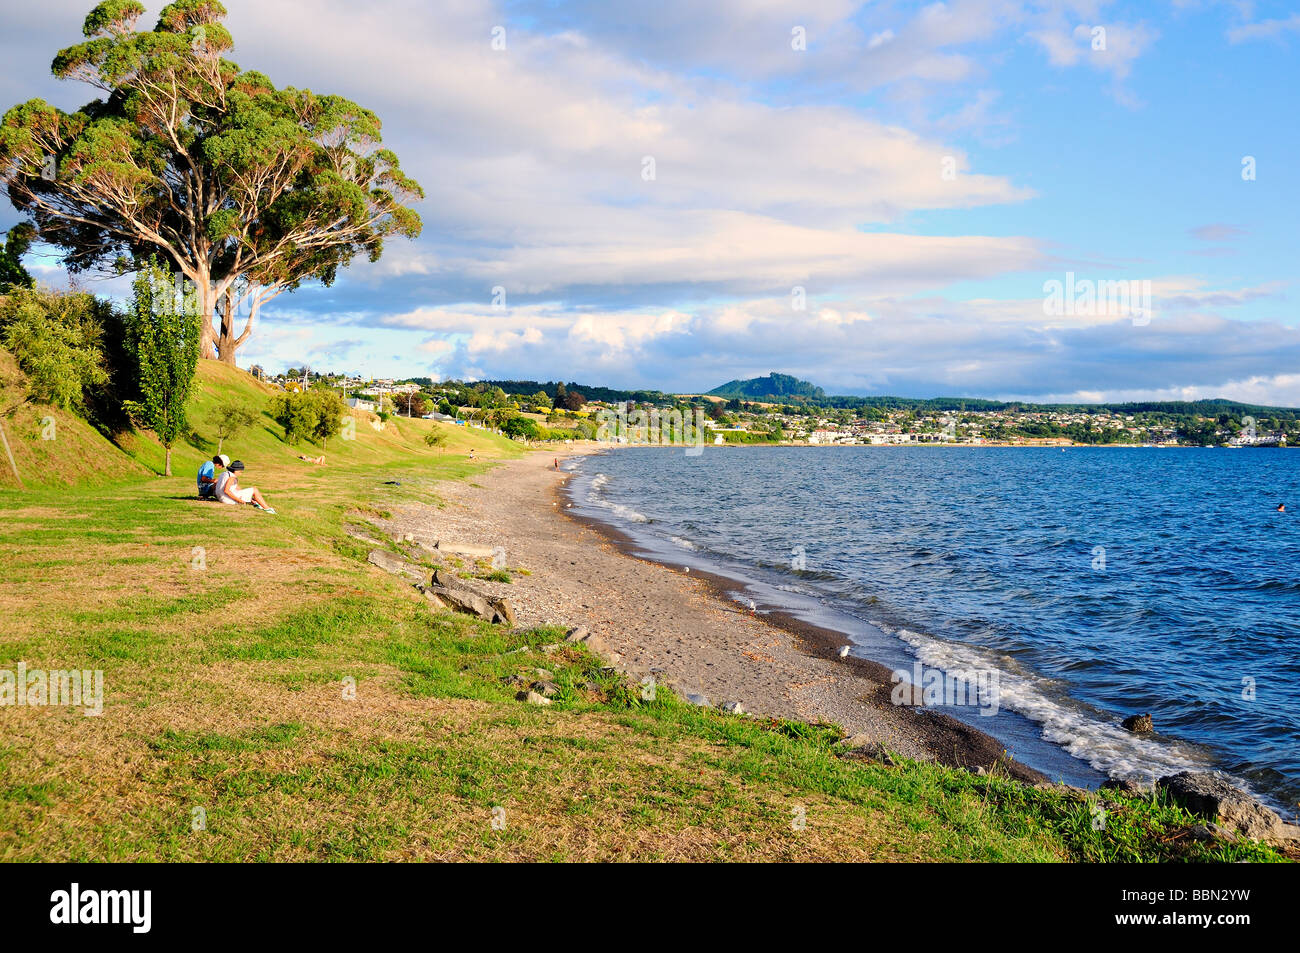 Lake Taupo North Island New Zealand - Stock Image